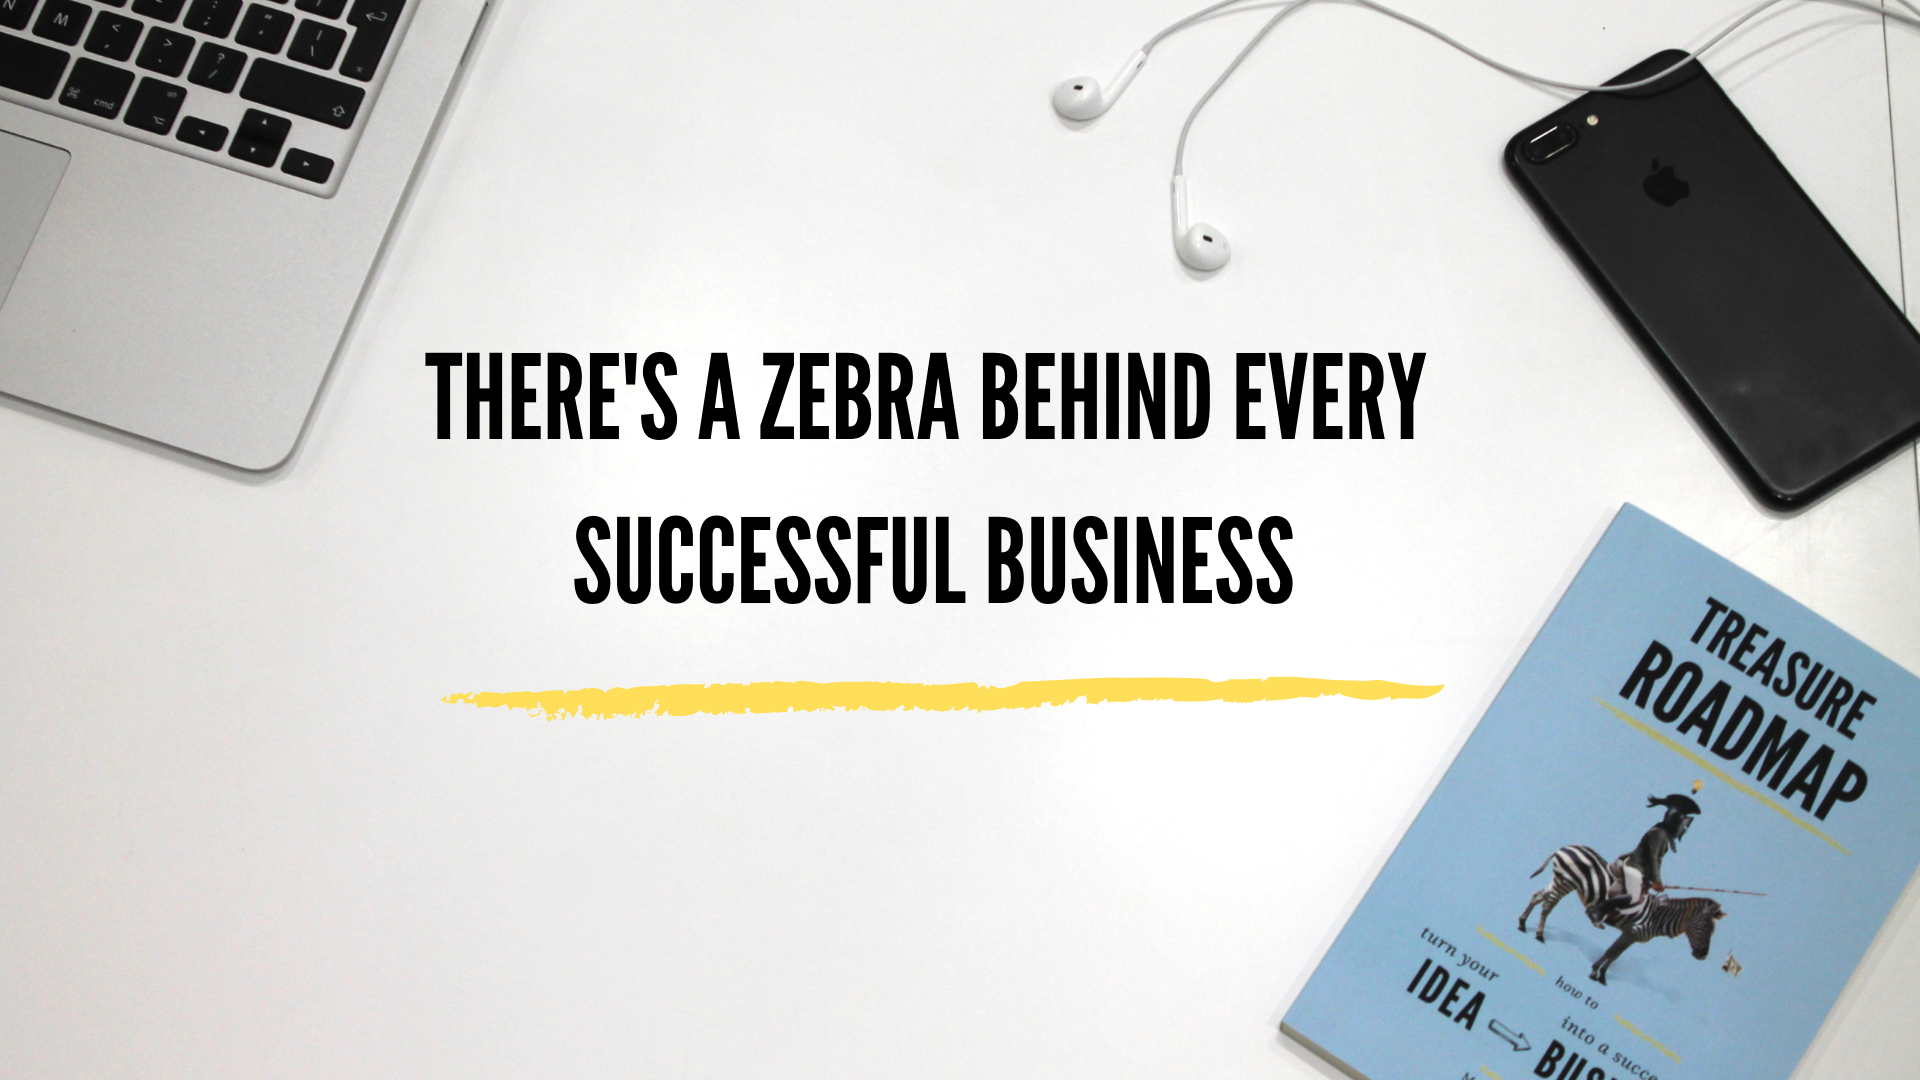 /theres-a-zebra-behind-every-successful-business-a3a28e264af1 feature image